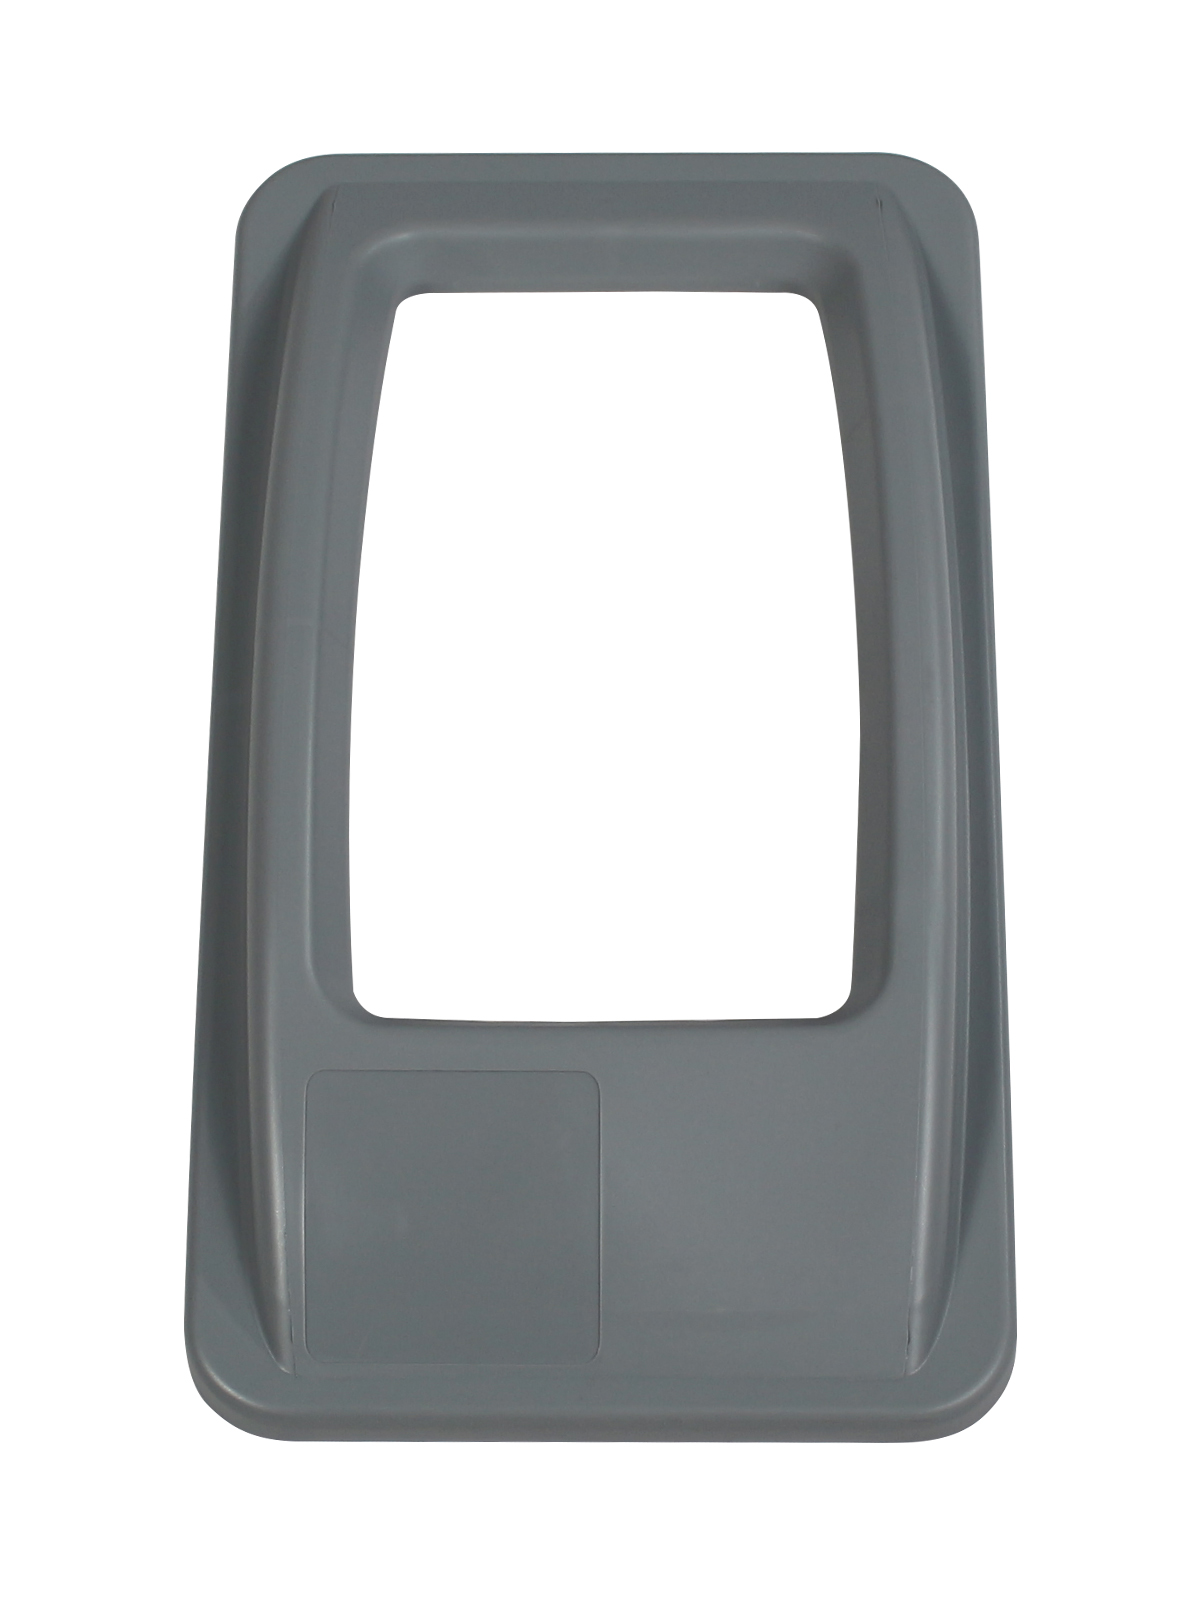 WASTE WATCHER - Single - Lid - Full - Executive Grey